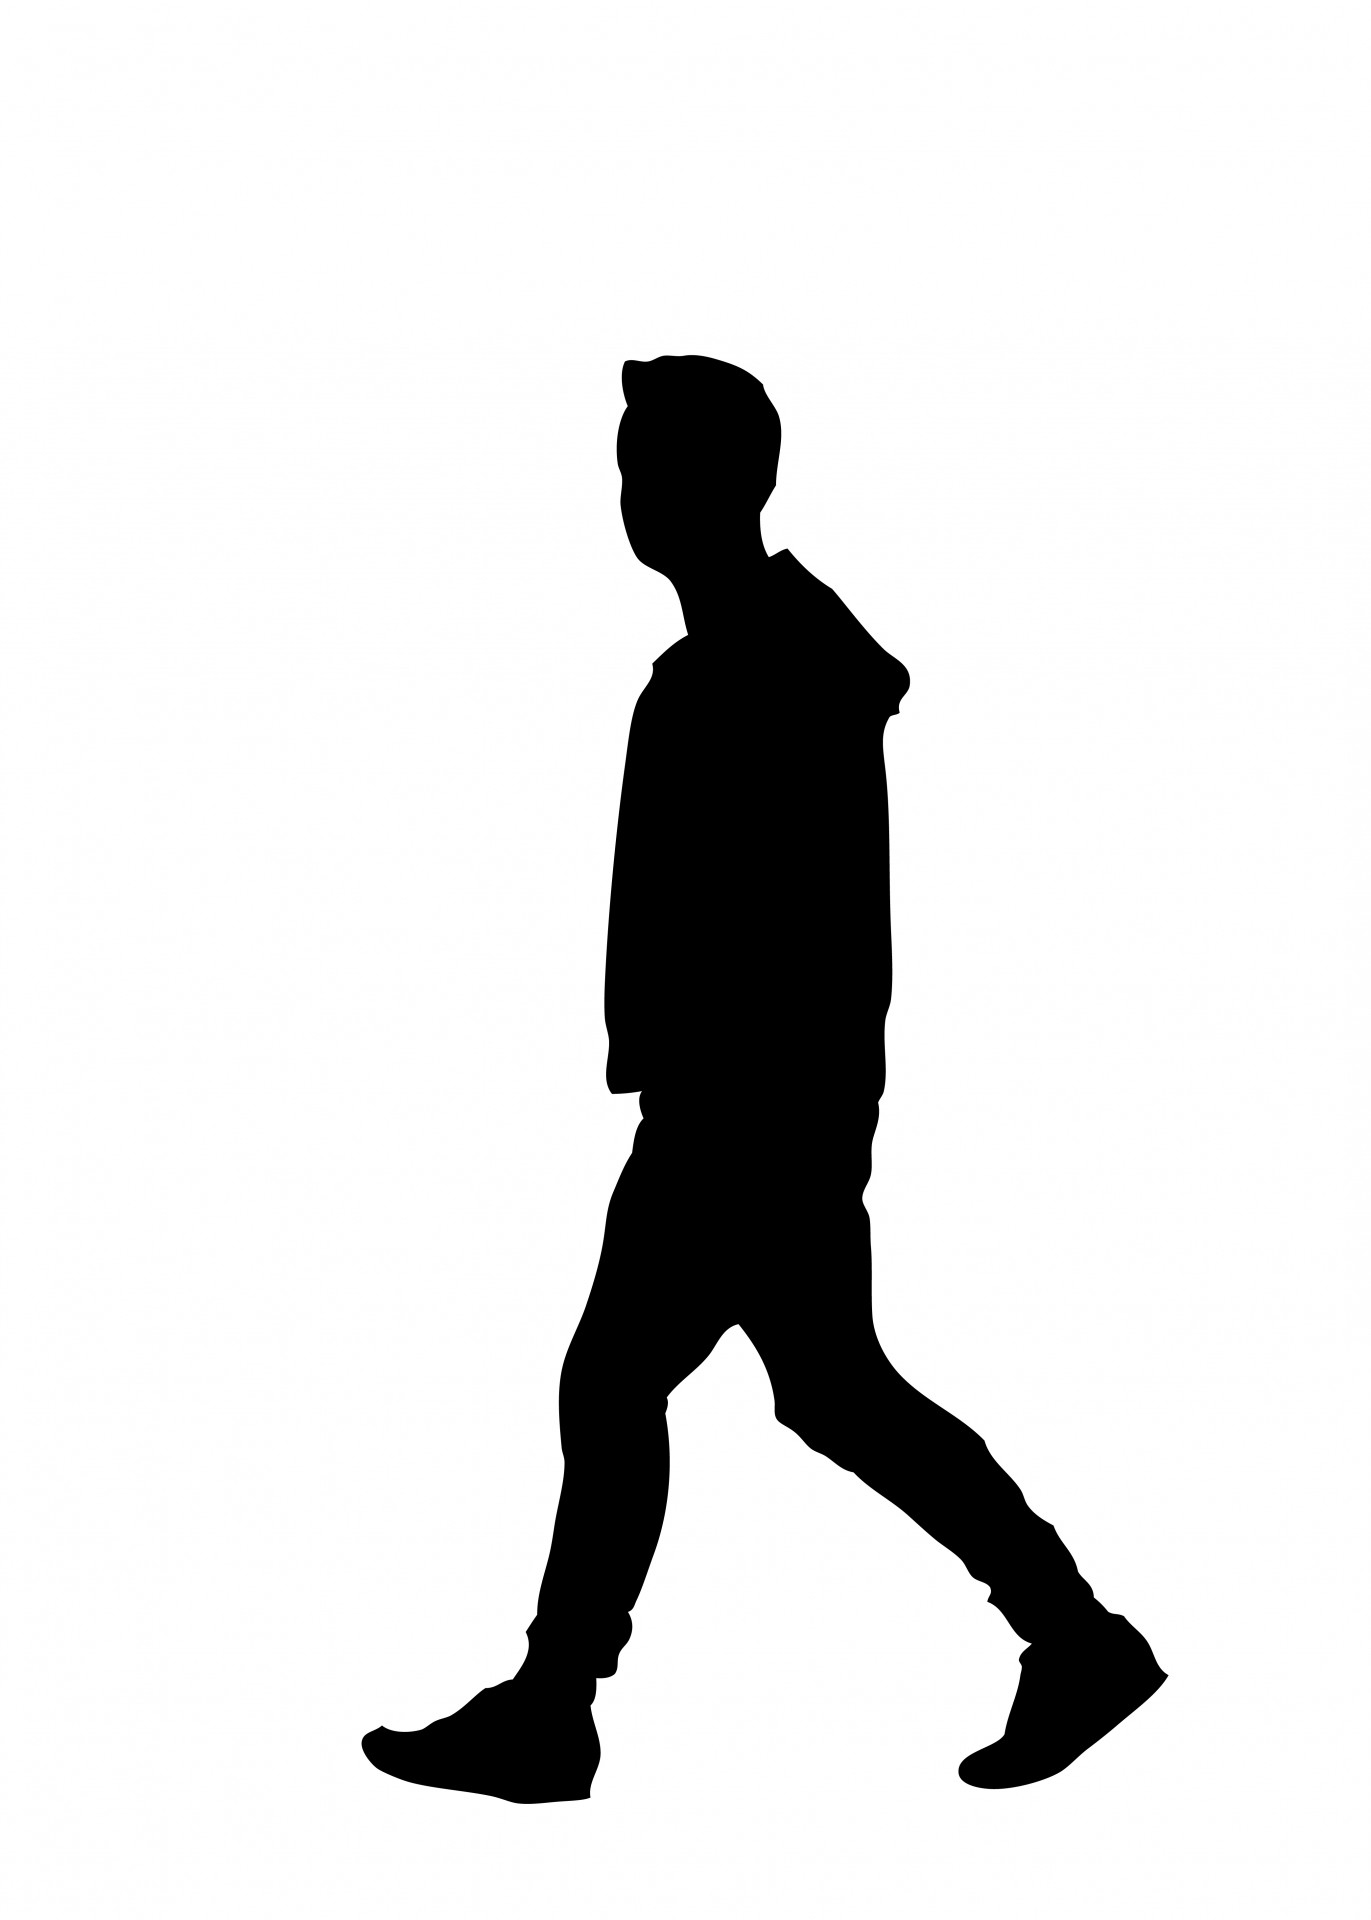 1371x1920 Man Walking Silhouette Clipart Free Stock Photo